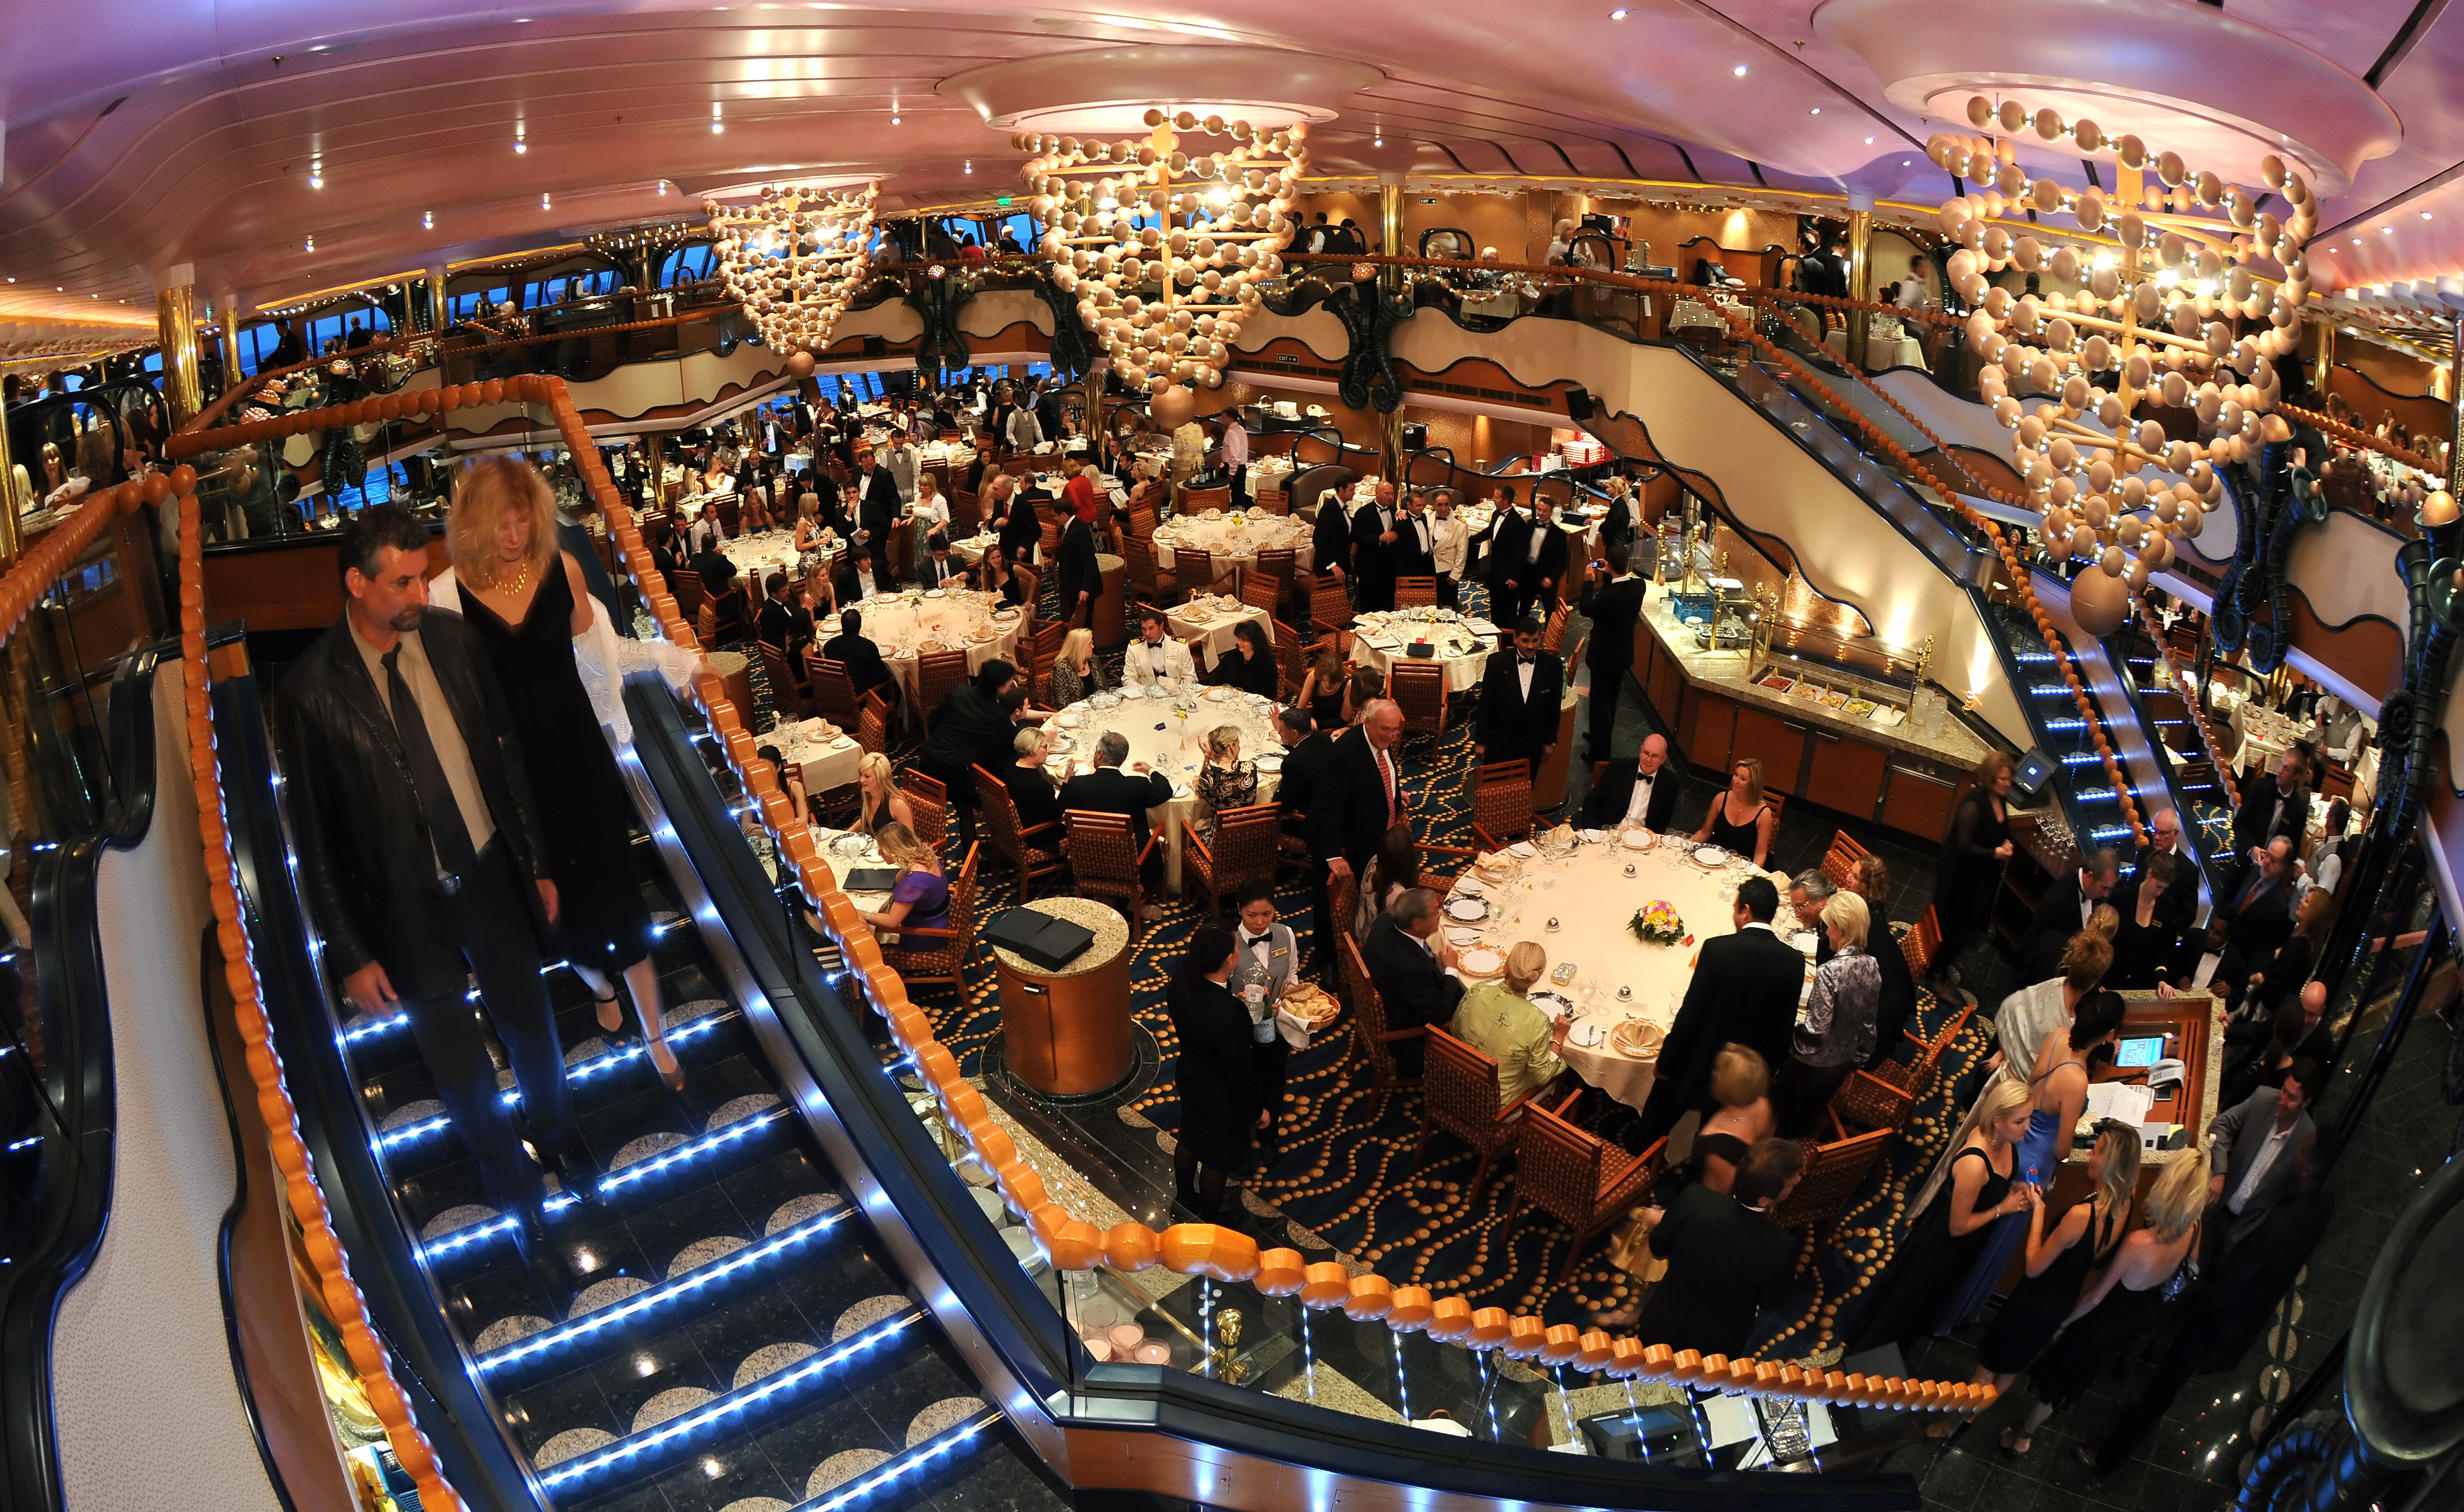 Carnival Cruise Lines Introduces New Your Choice Dining Program Carnival Cruise Line News